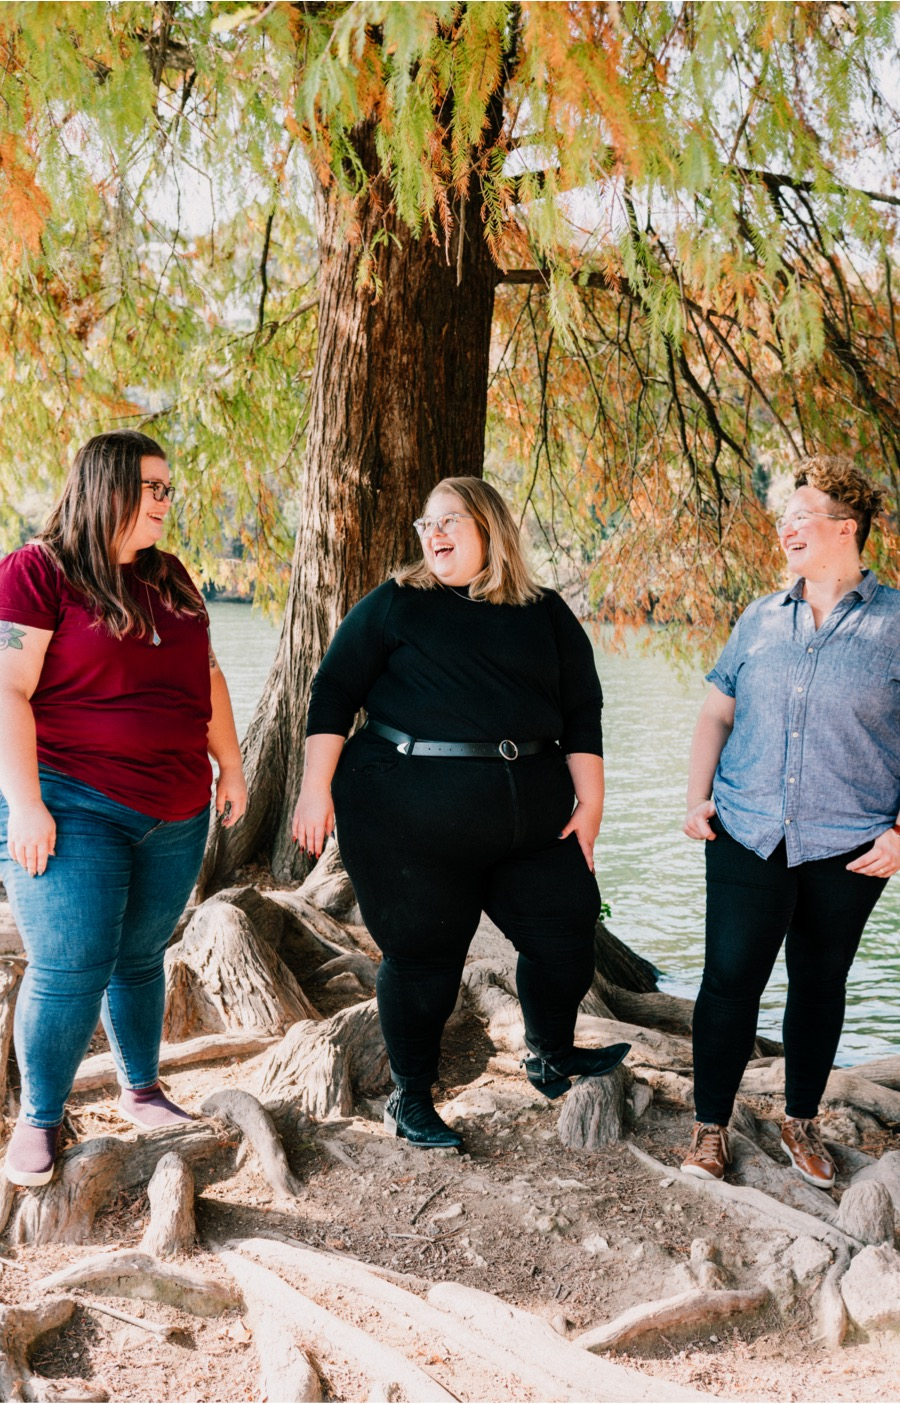 Three Ample + Rooted team members laughing together while standing at water's edge